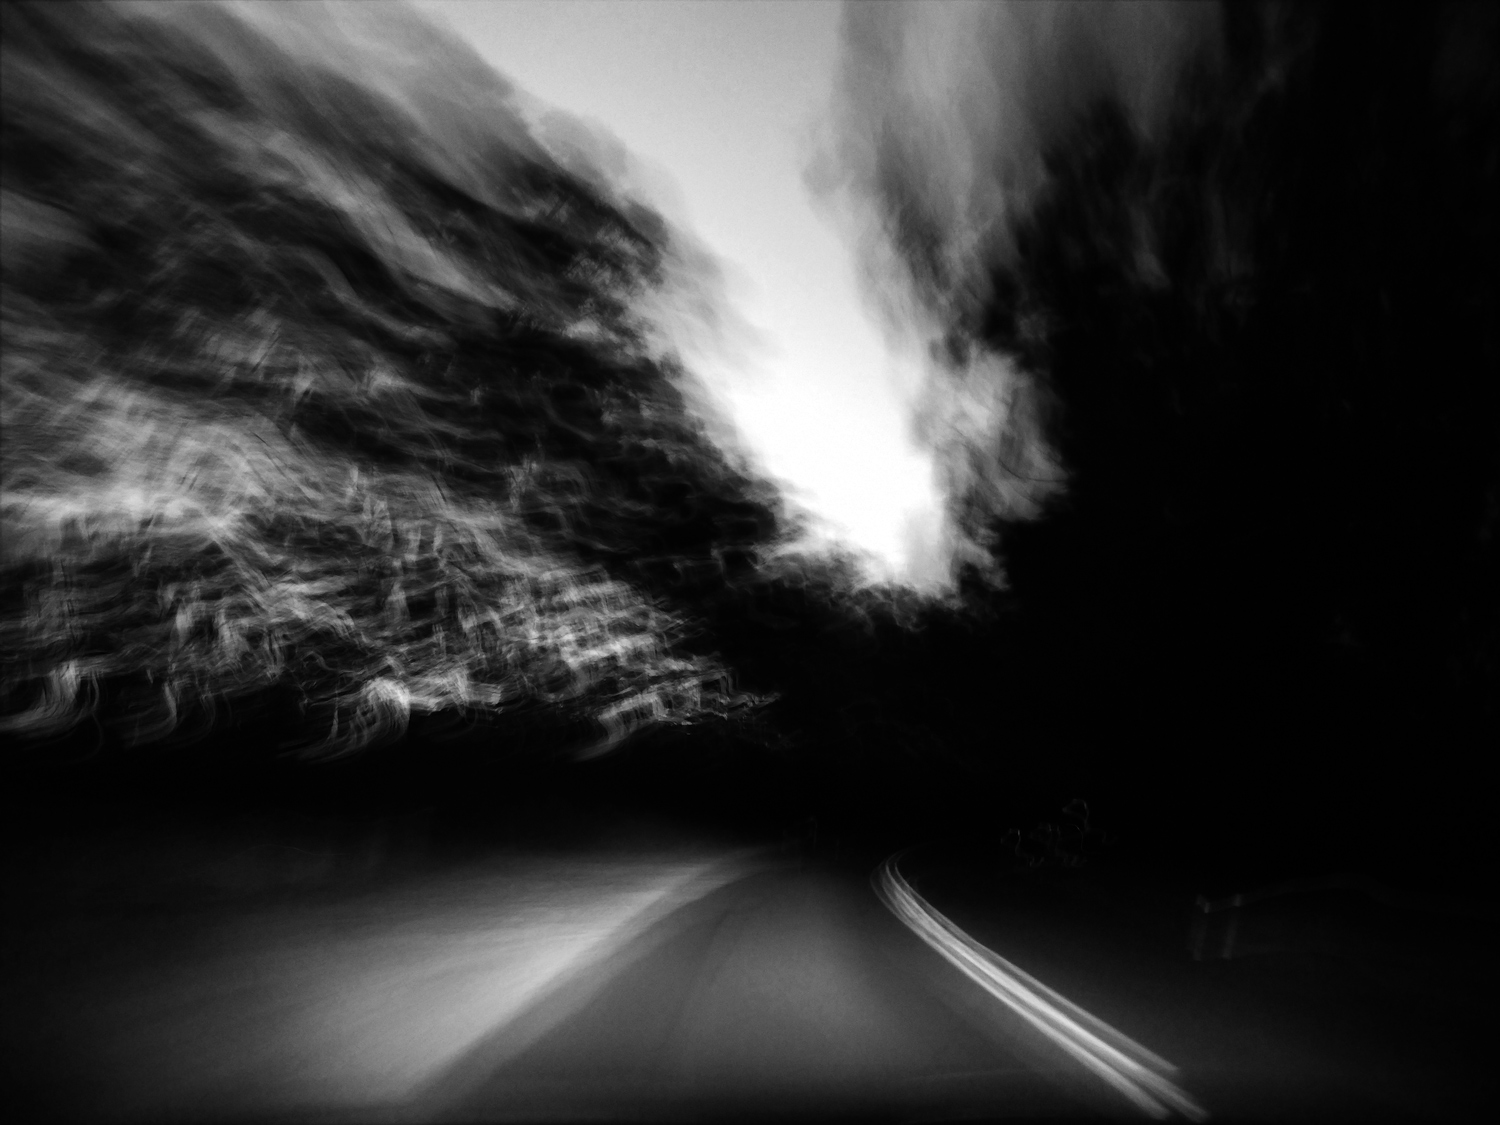 experimental phone photo of a blurry road